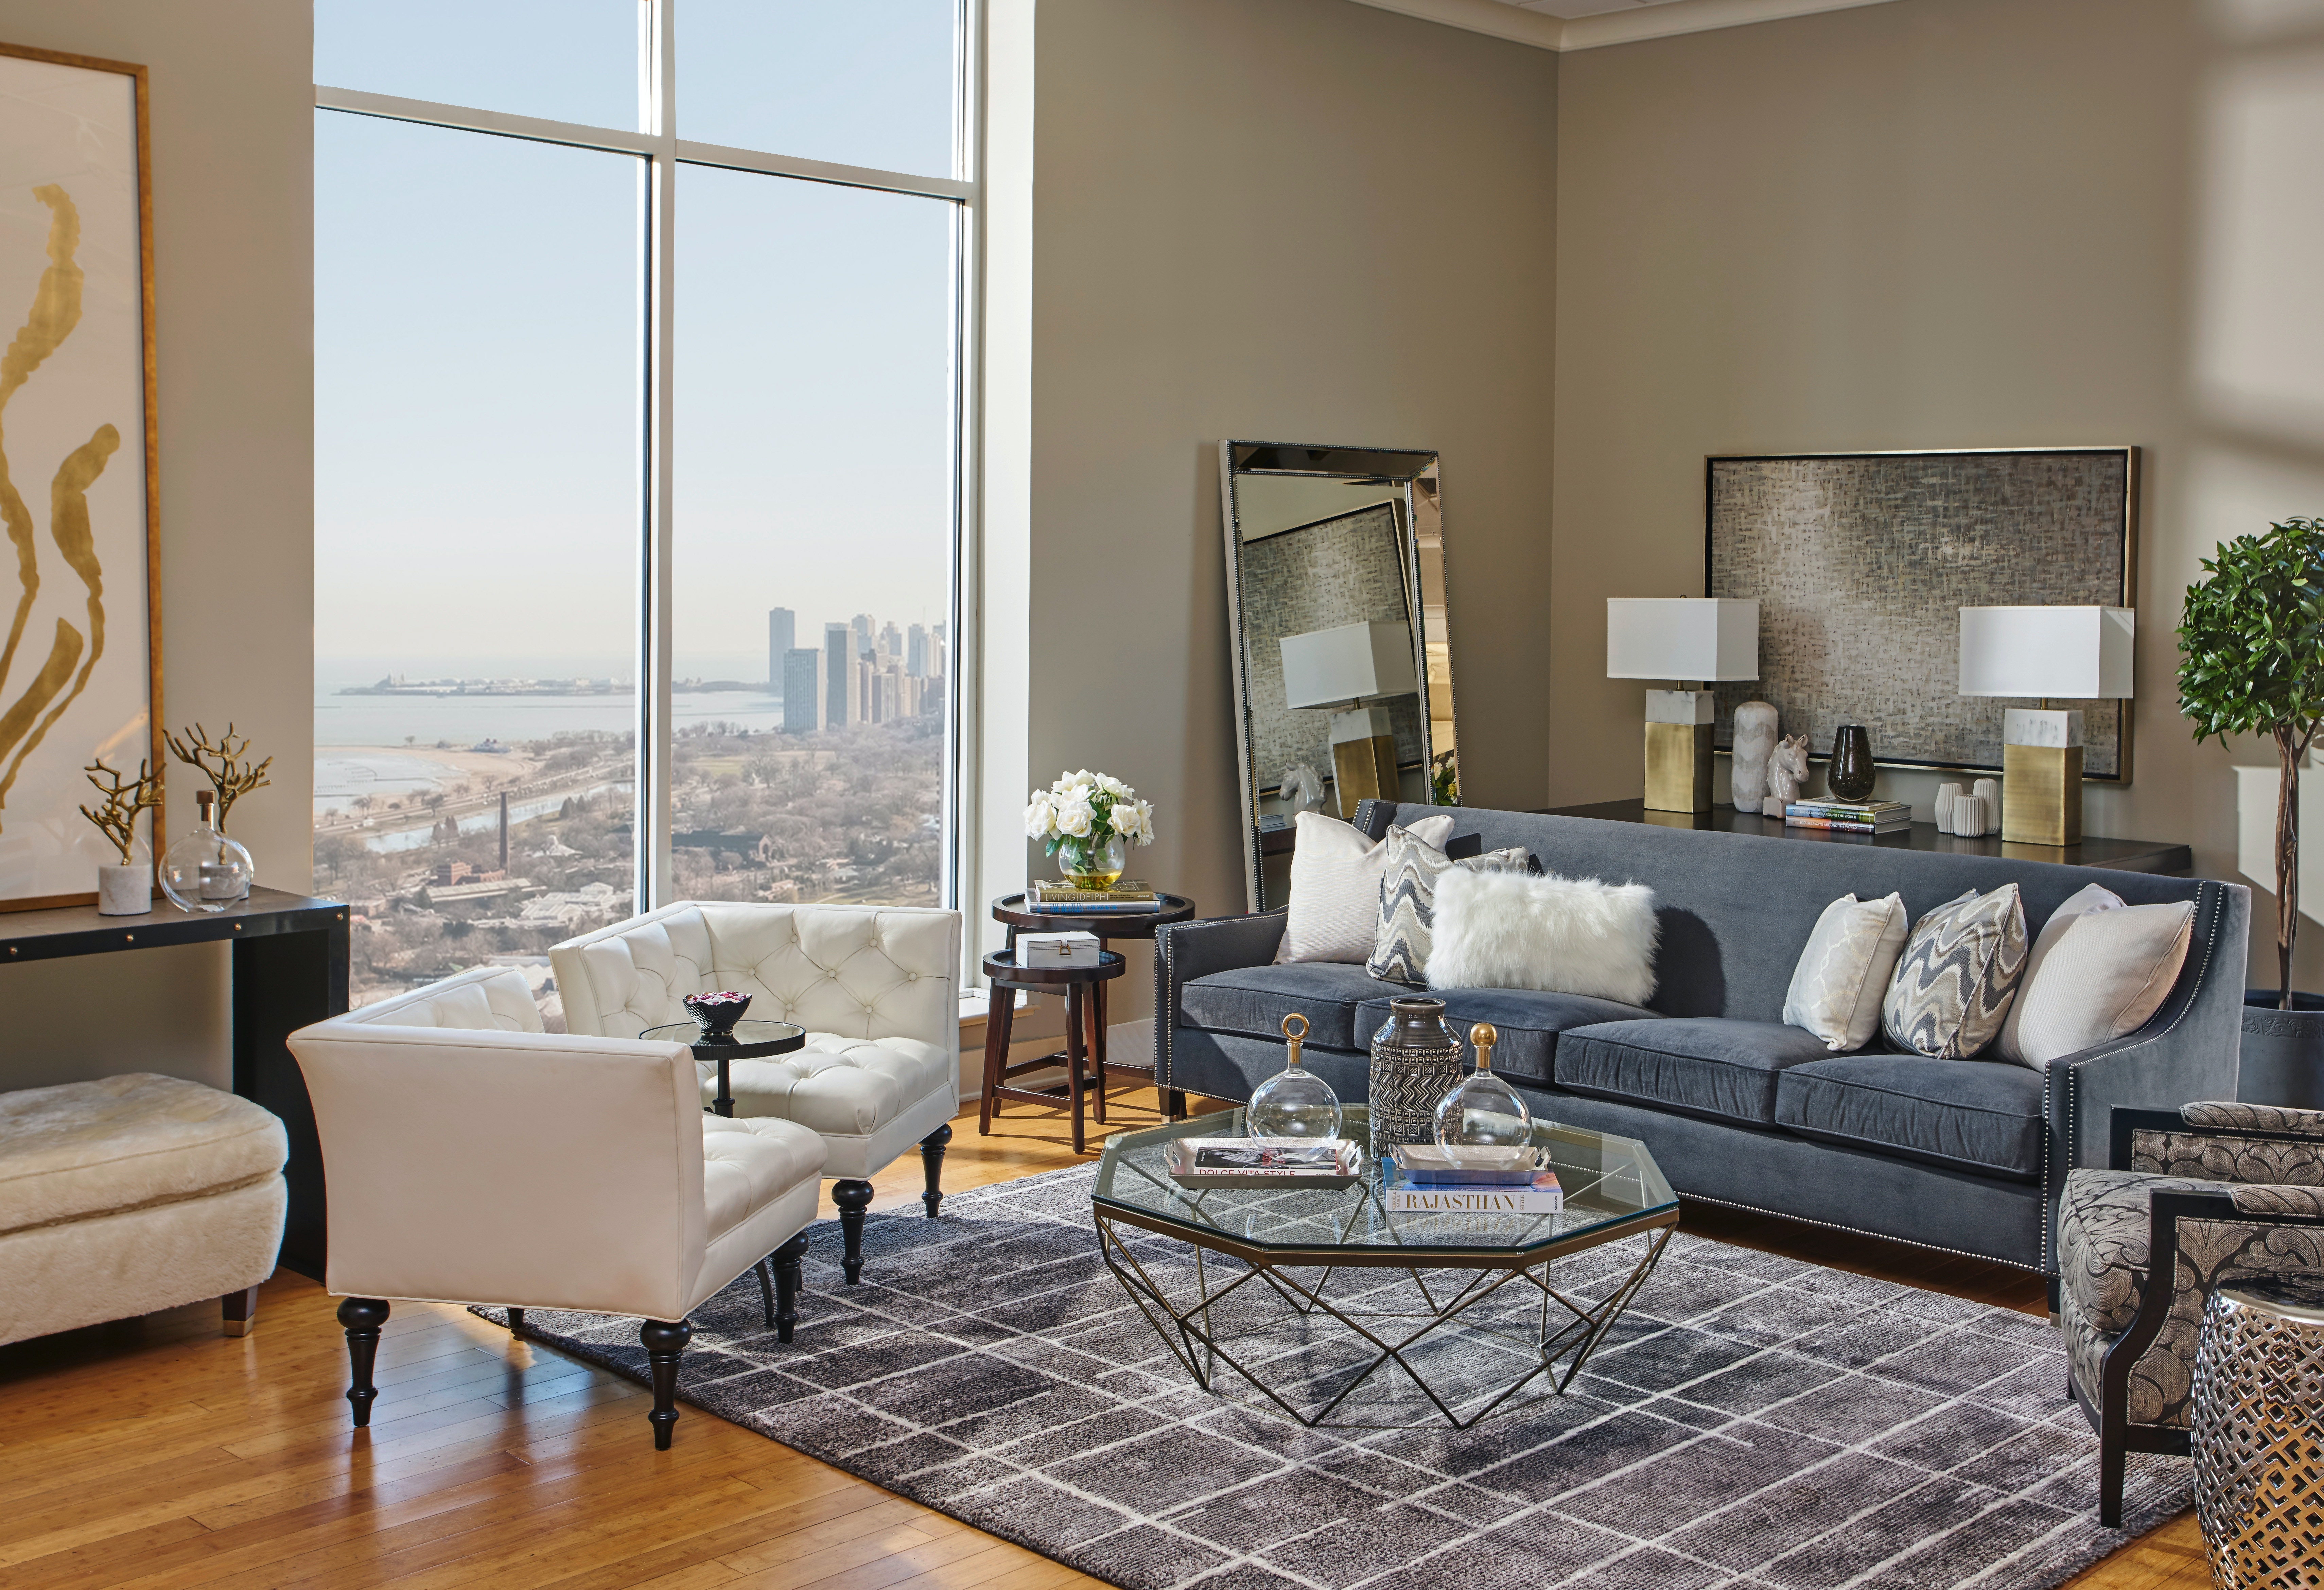 Featured Product PALISADES LIVING ROOM PALISADES_LIVING From Walter E. Smithe  Furniture + Design